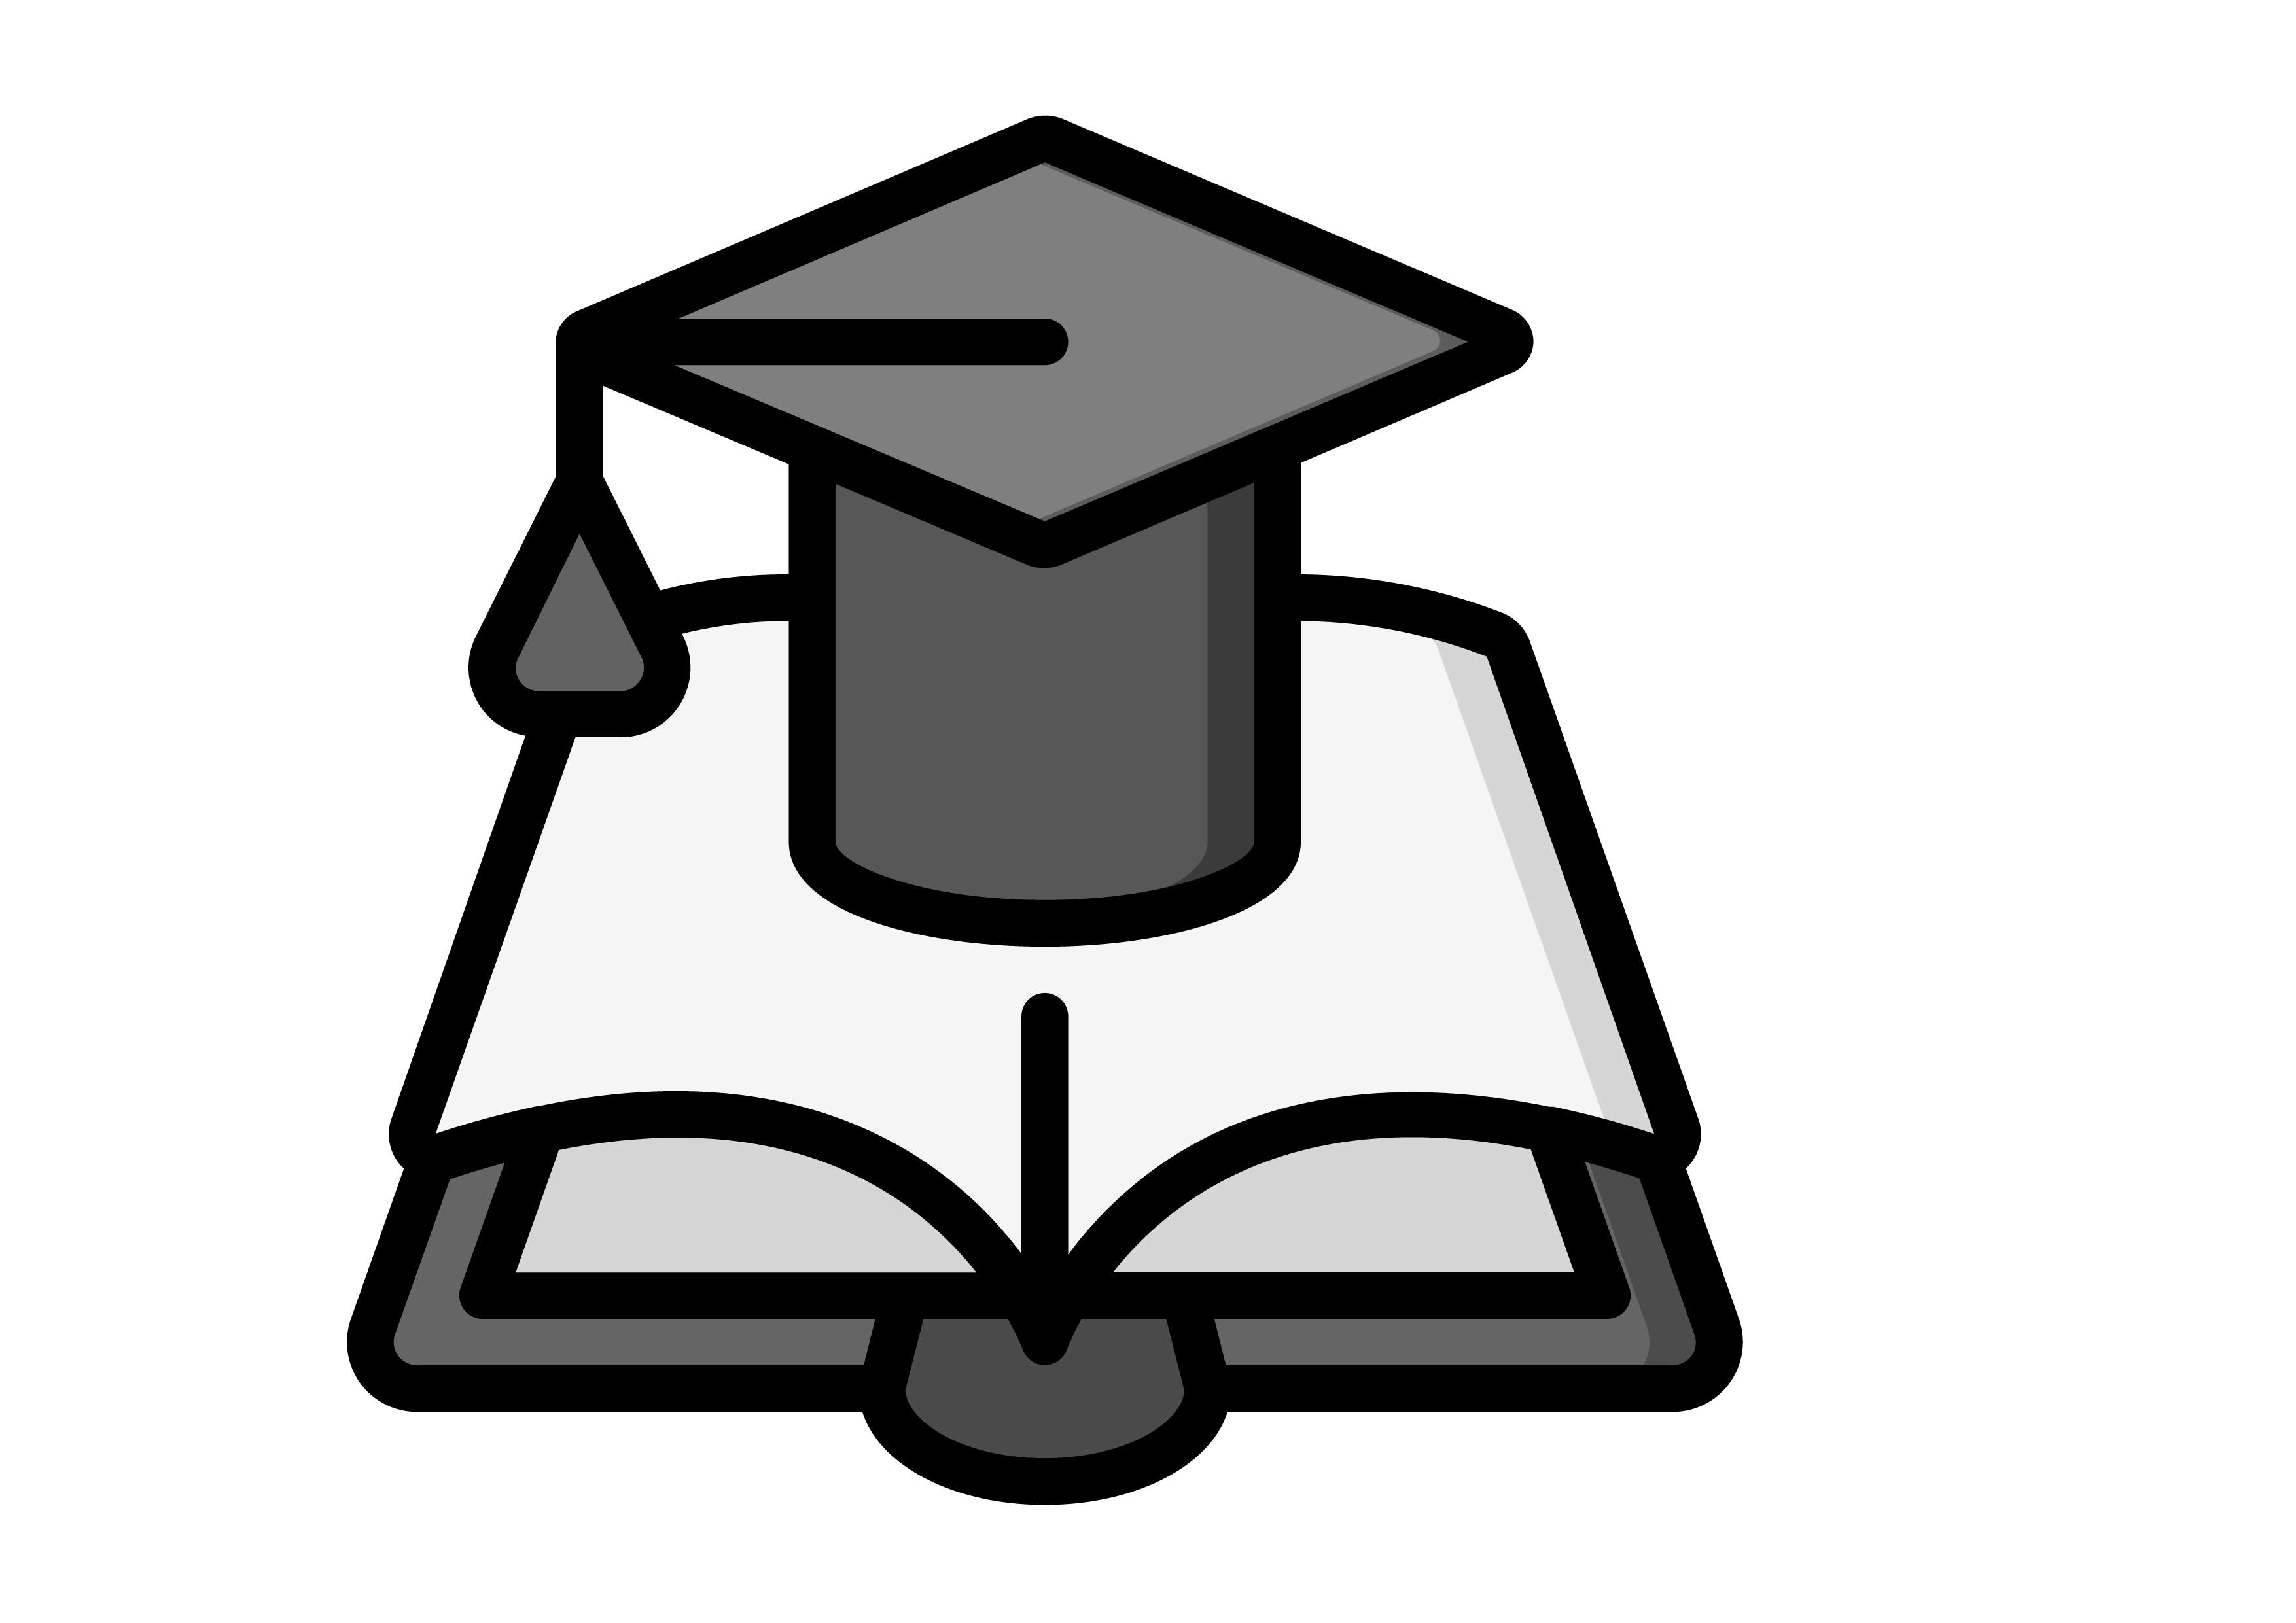 Download Free Graduation Books Graphic By Ibua9900 Creative Fabrica for Cricut Explore, Silhouette and other cutting machines.